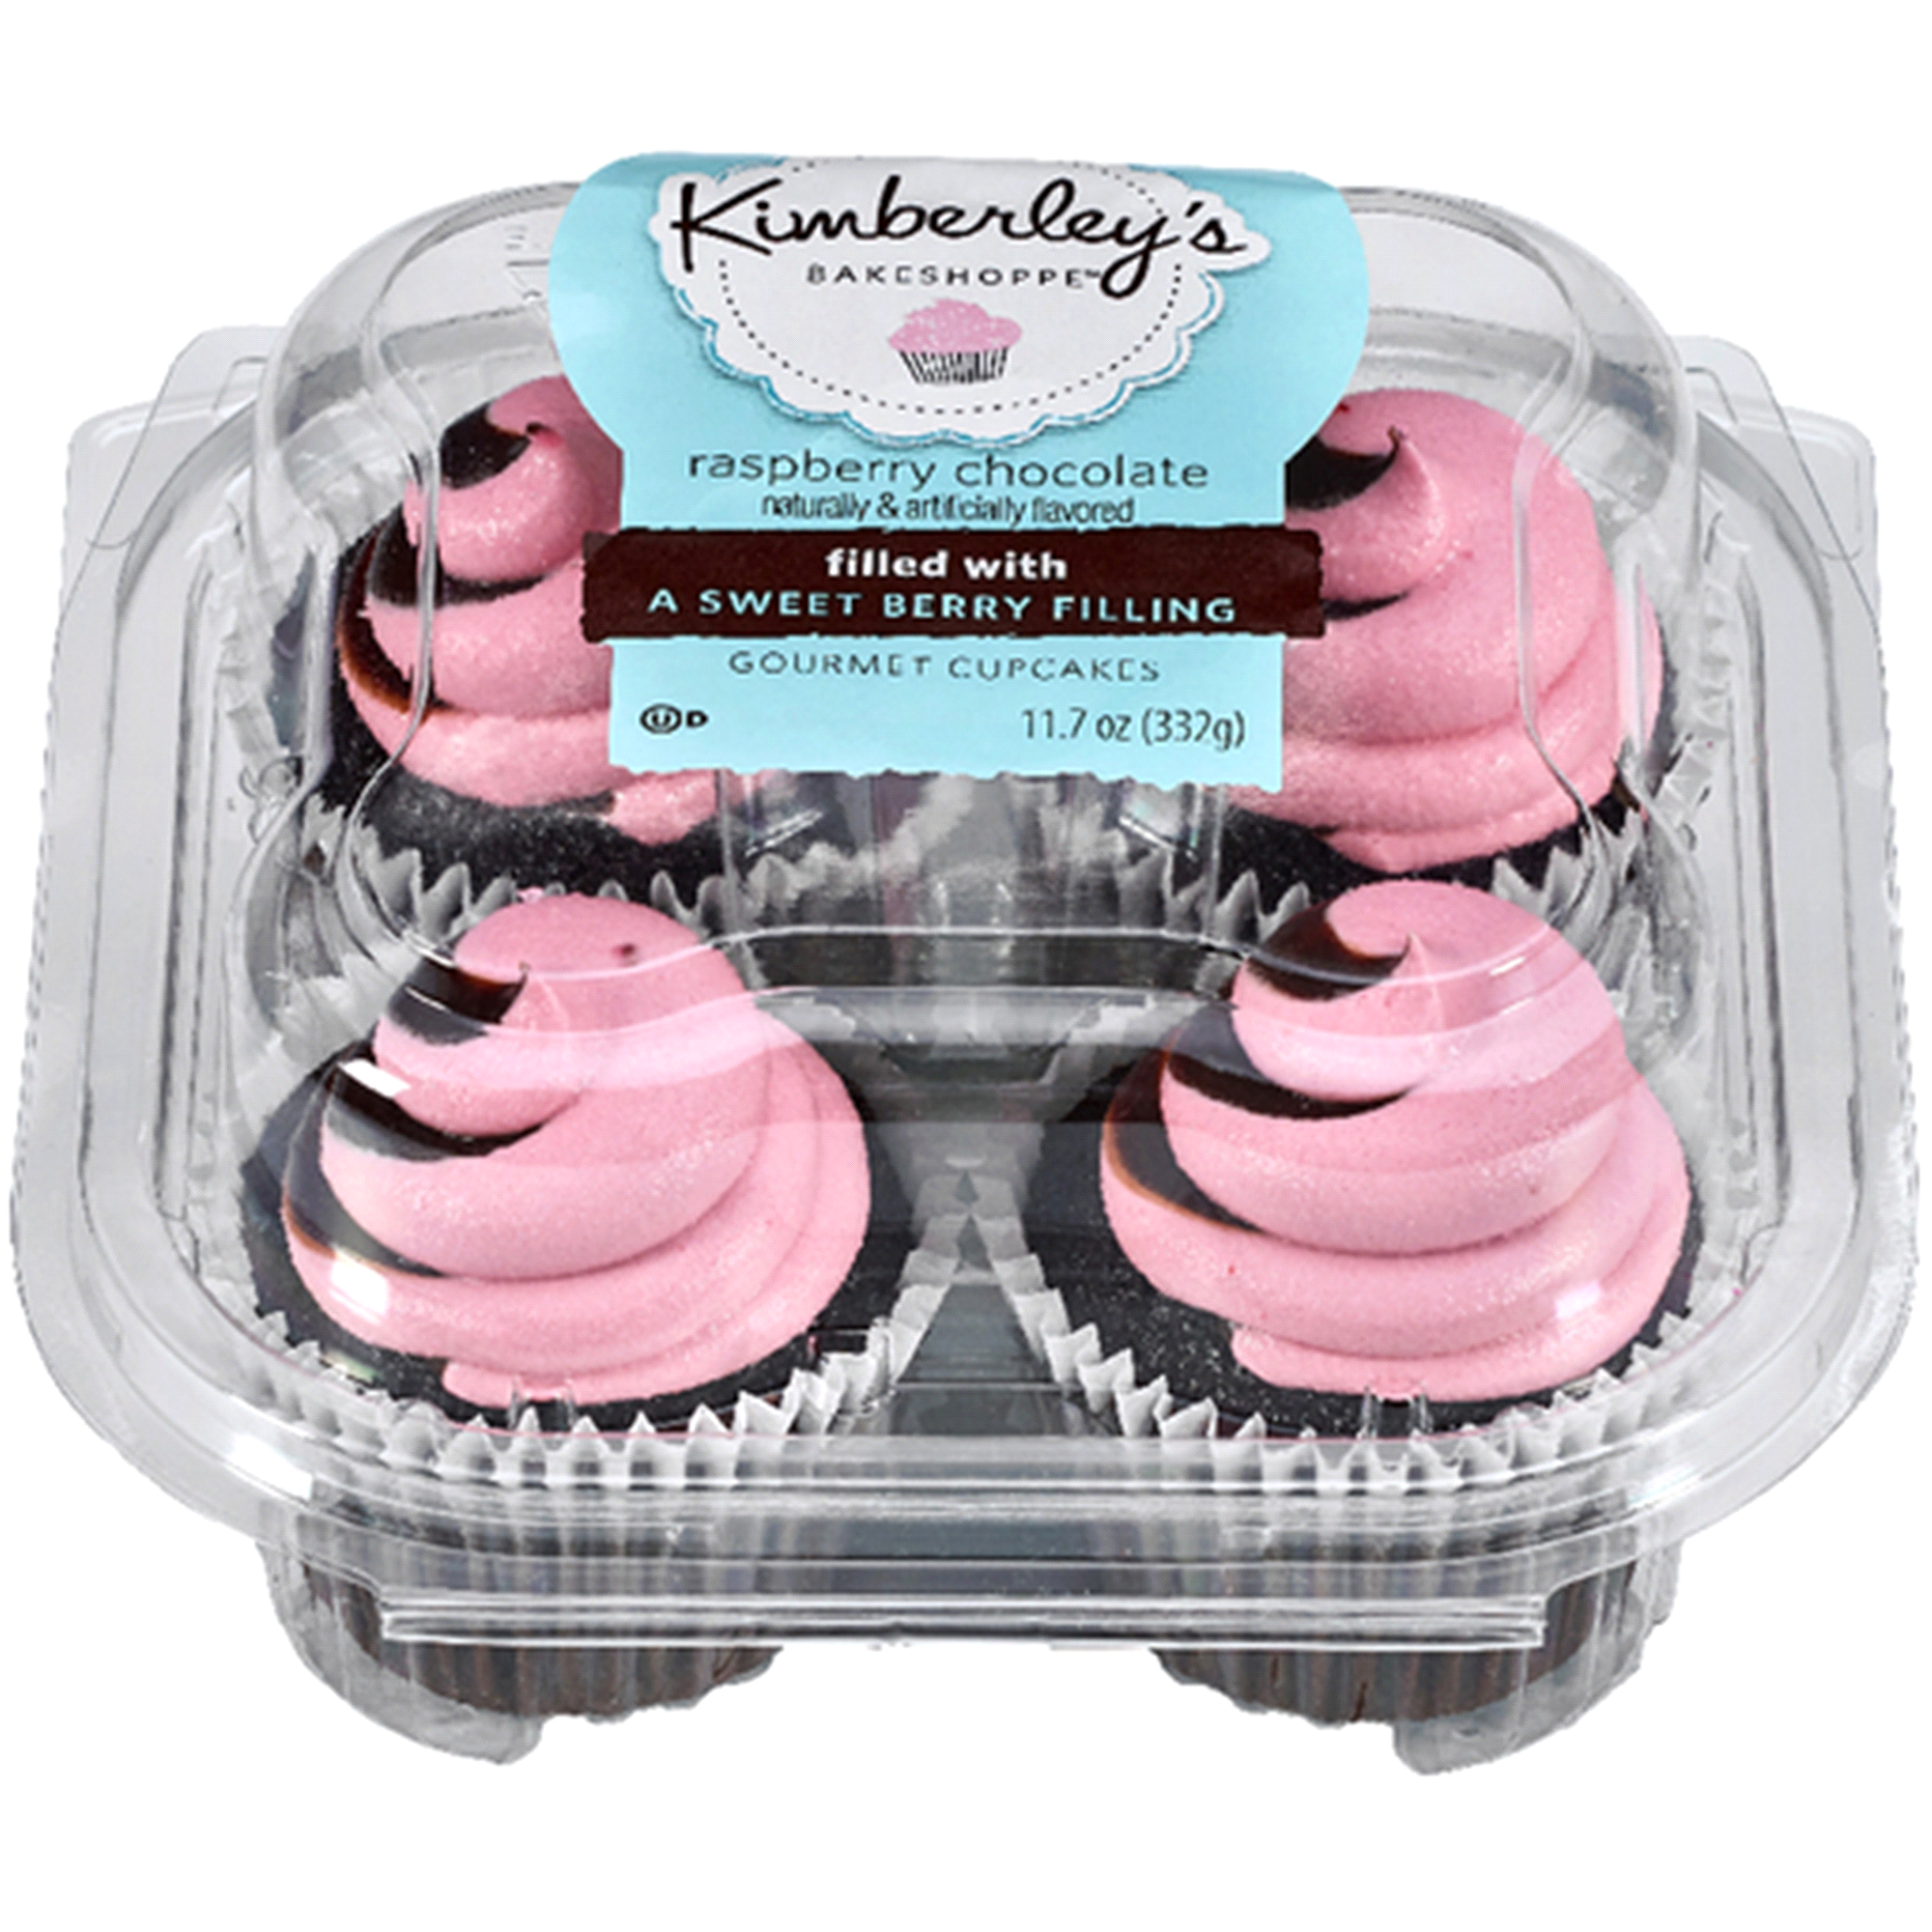 Kimberlys Cupcakes Chocolate Raspberry 4ct 11 7 oz